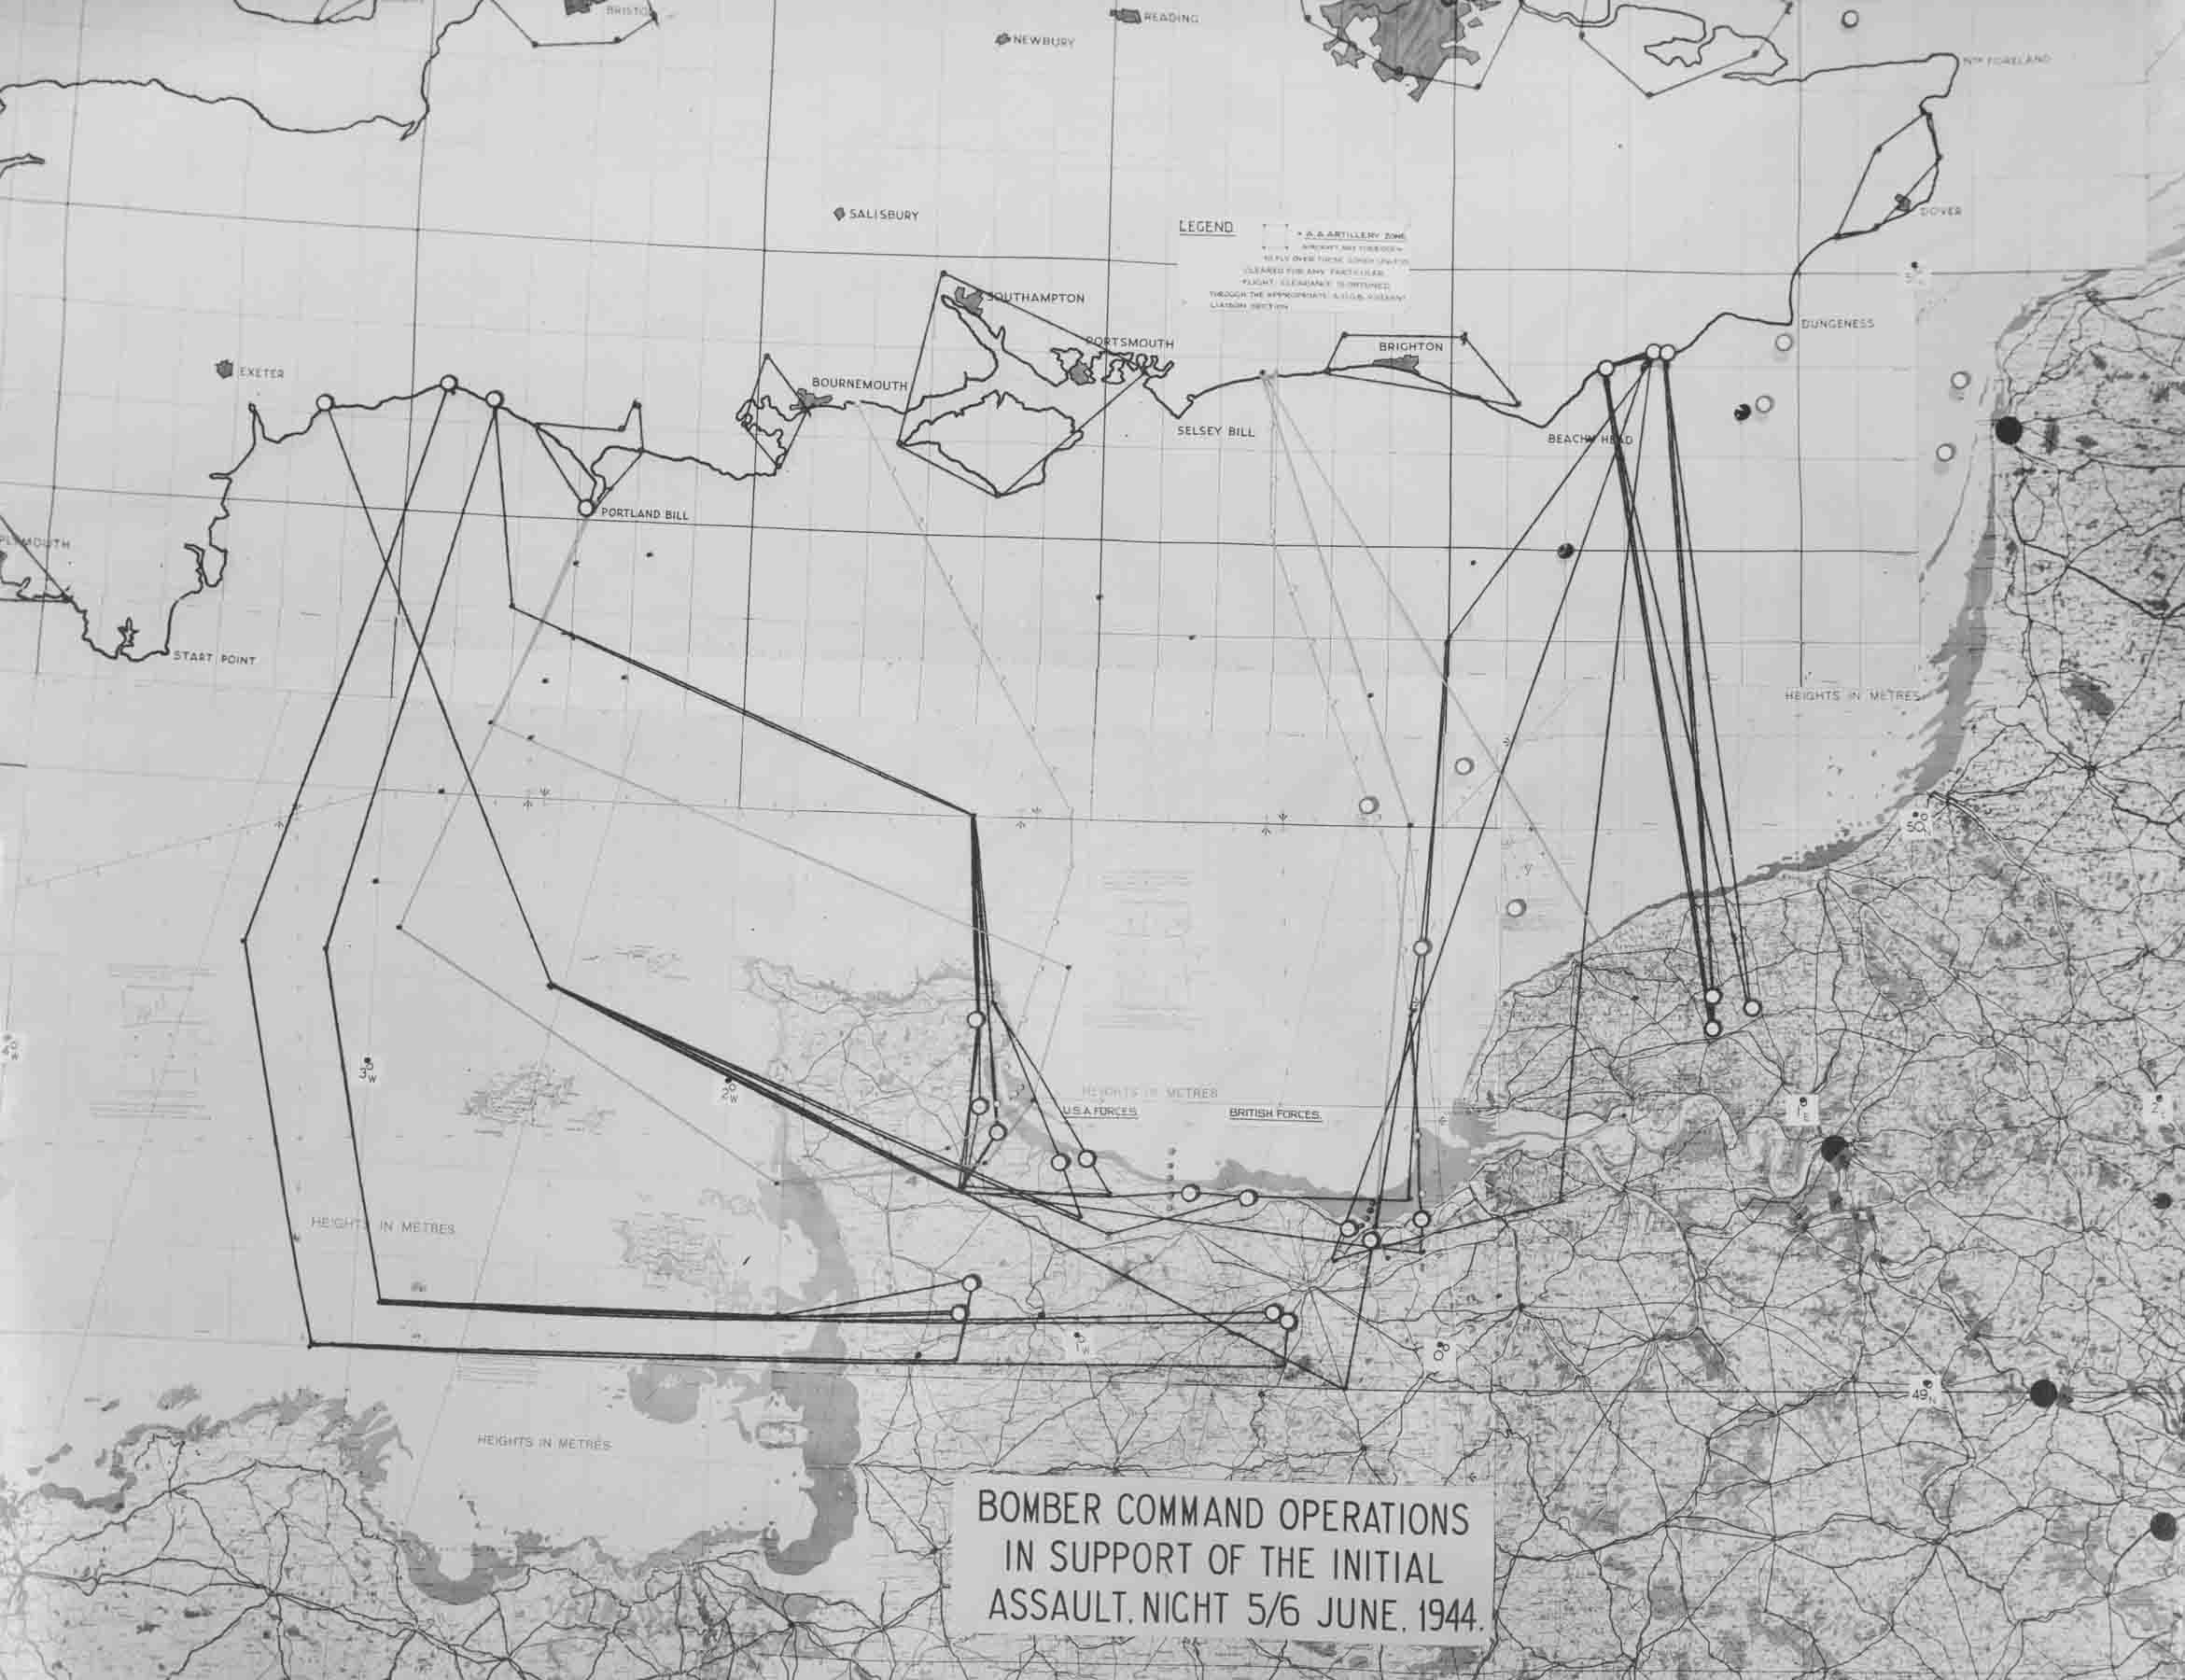 Map outlying the Bomber Command operations on the night of 5-6 June 1944